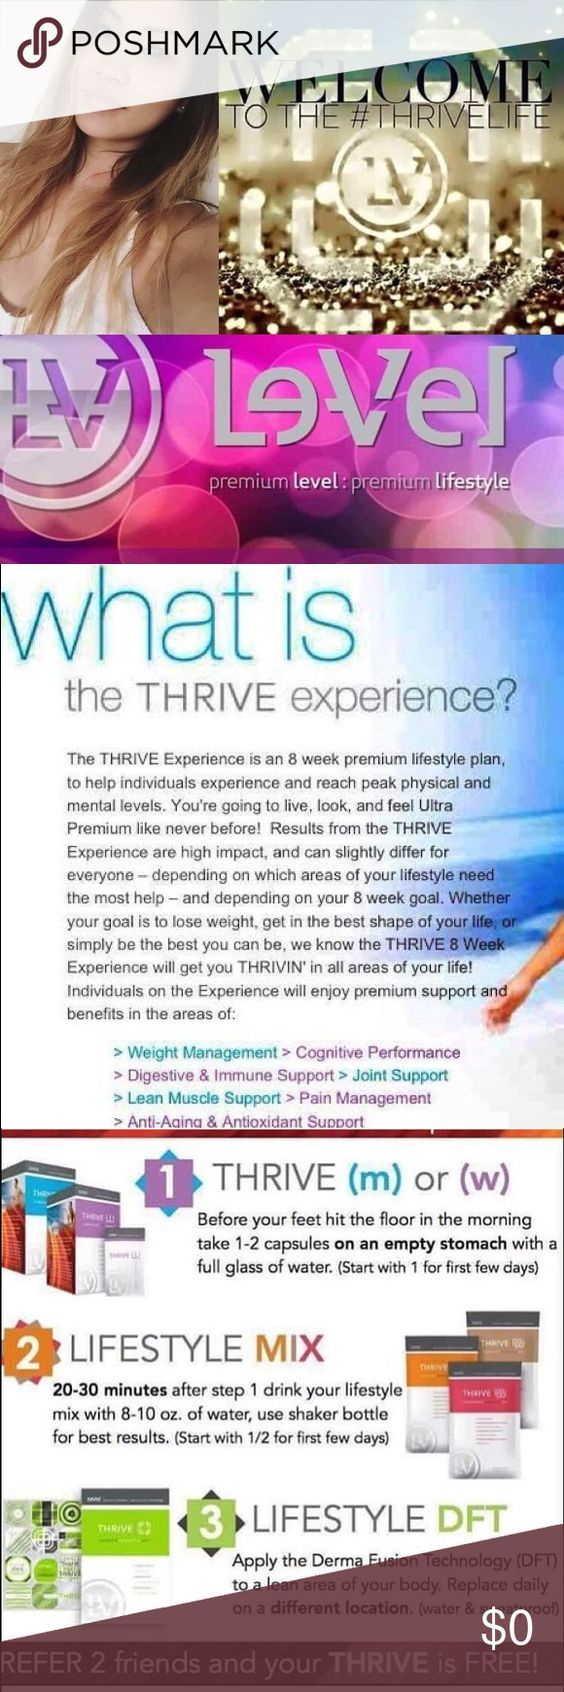 WHAT IS THRIVE? CLICK to find out!!!  Kellzann.le-vel.com